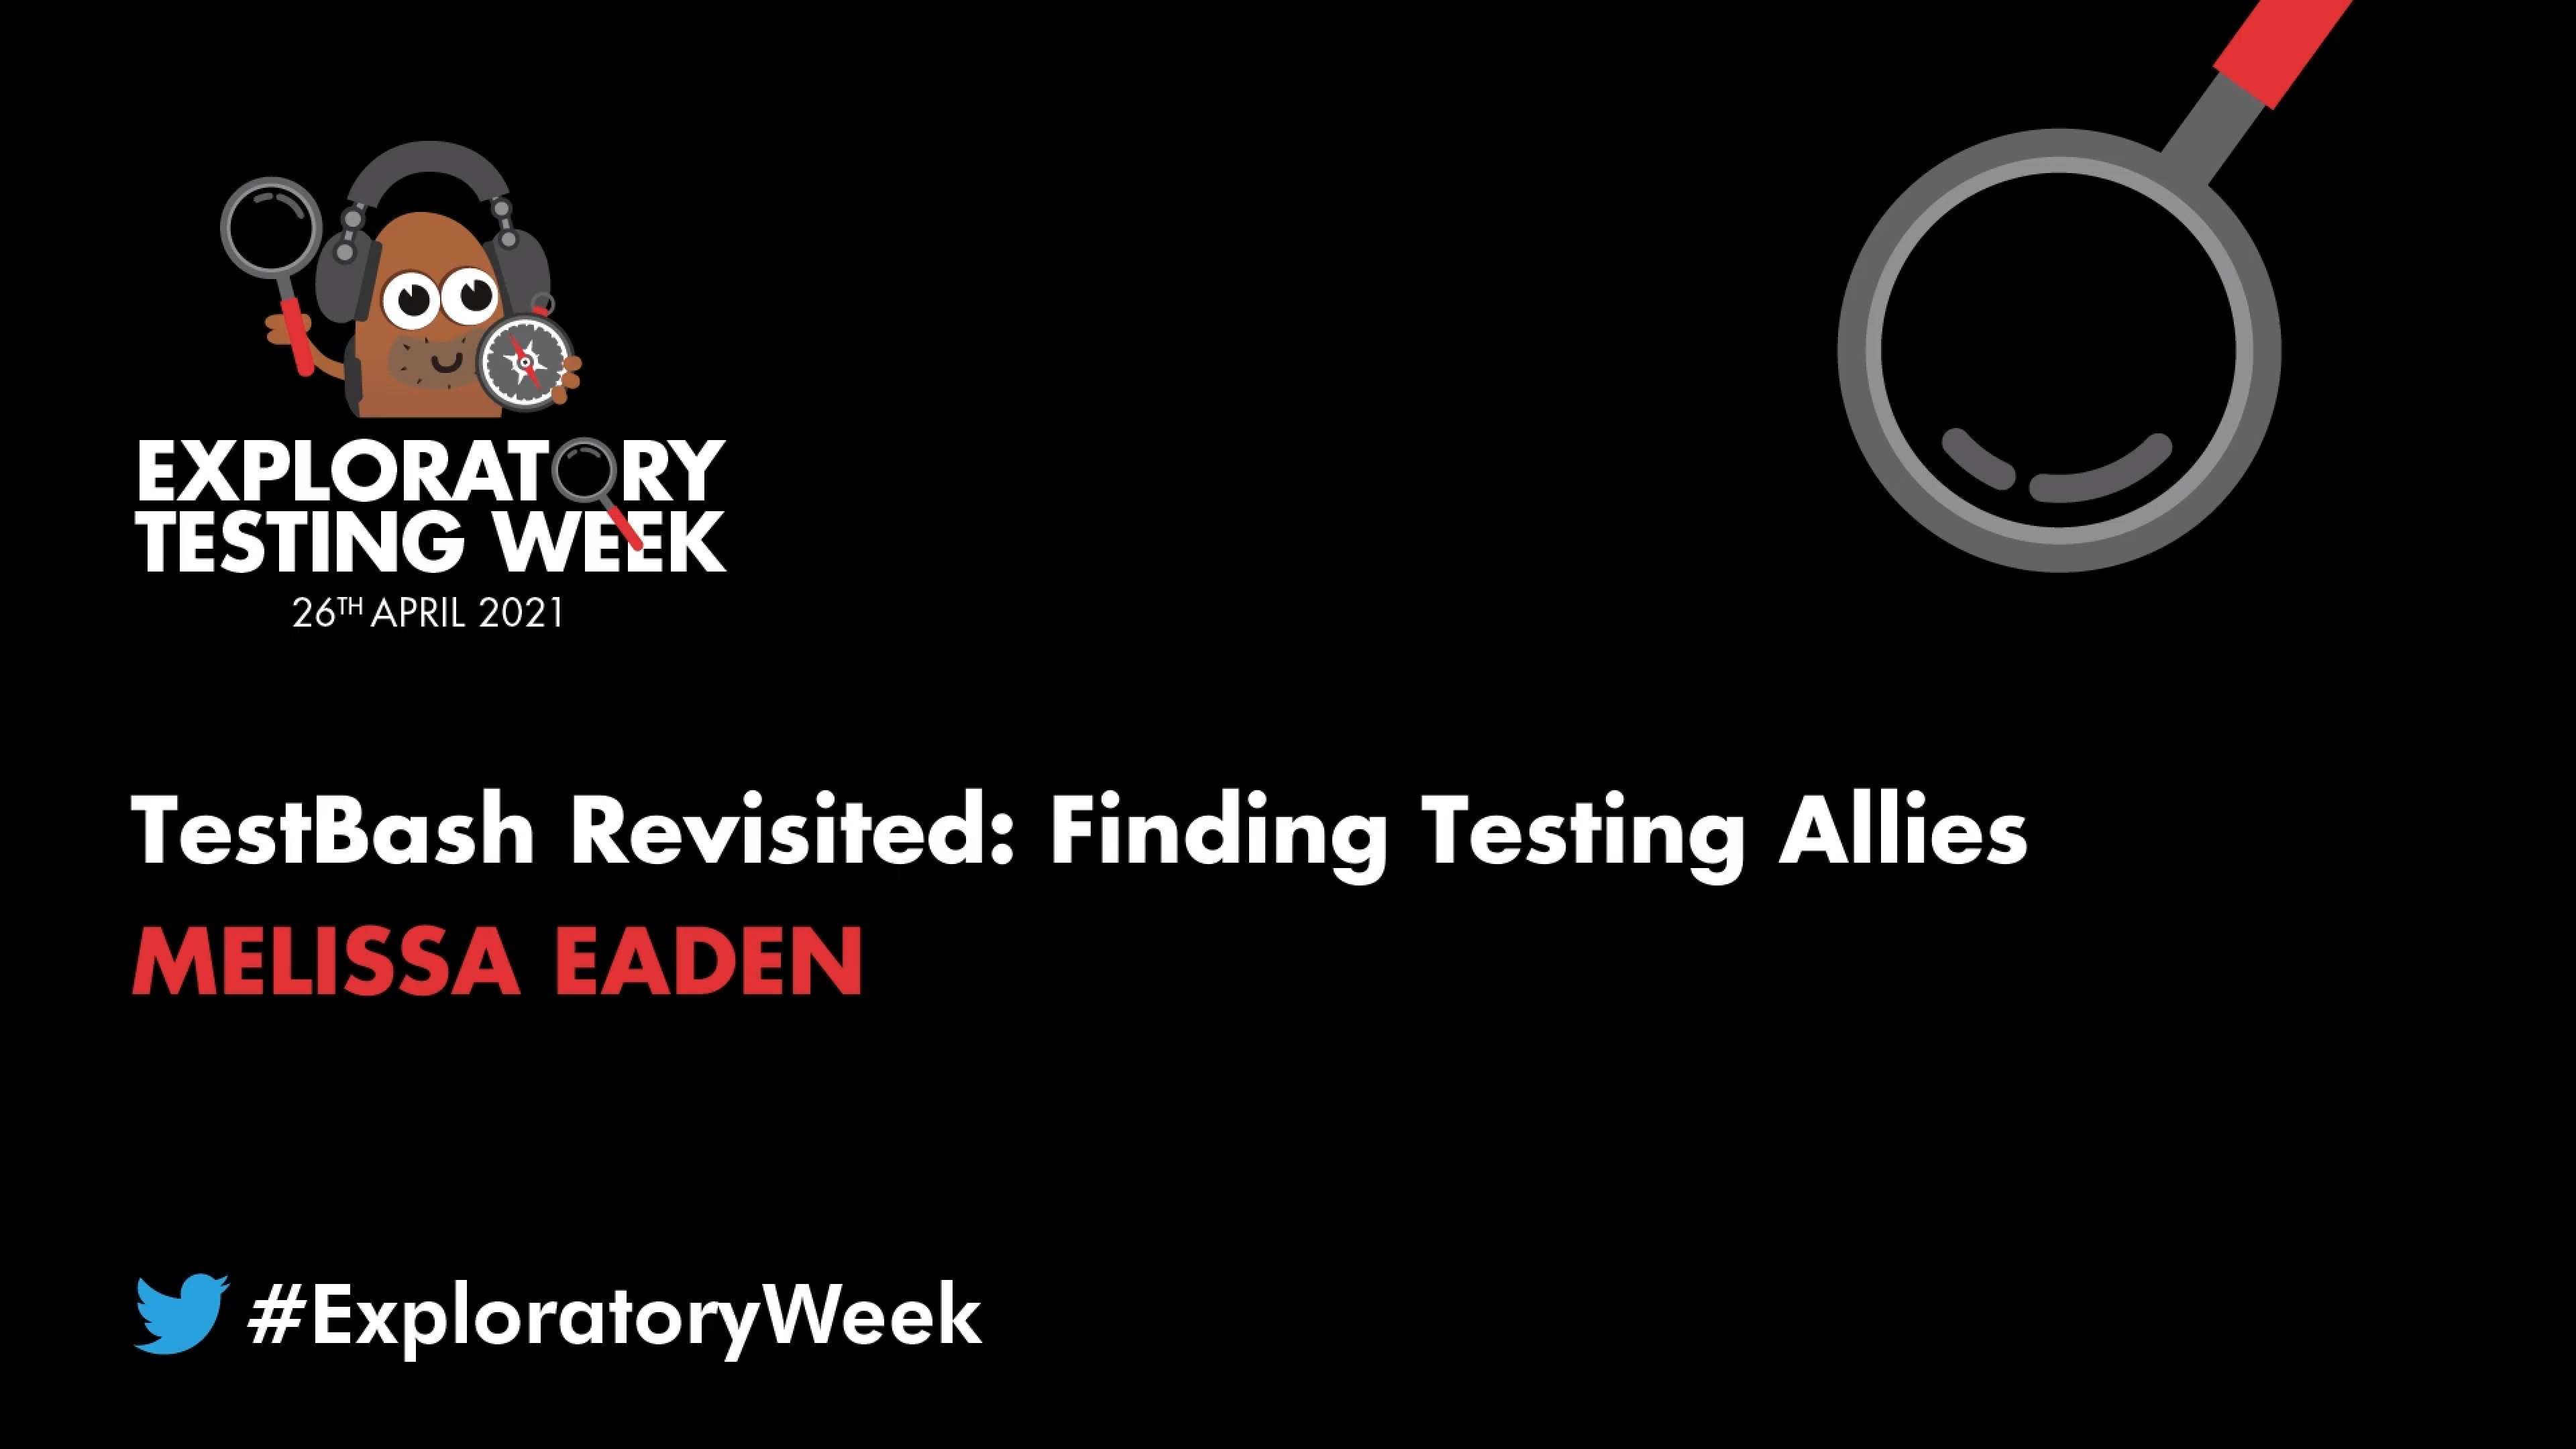 TestBash Revisited: Finding Testing Allies with Melissa Eaden